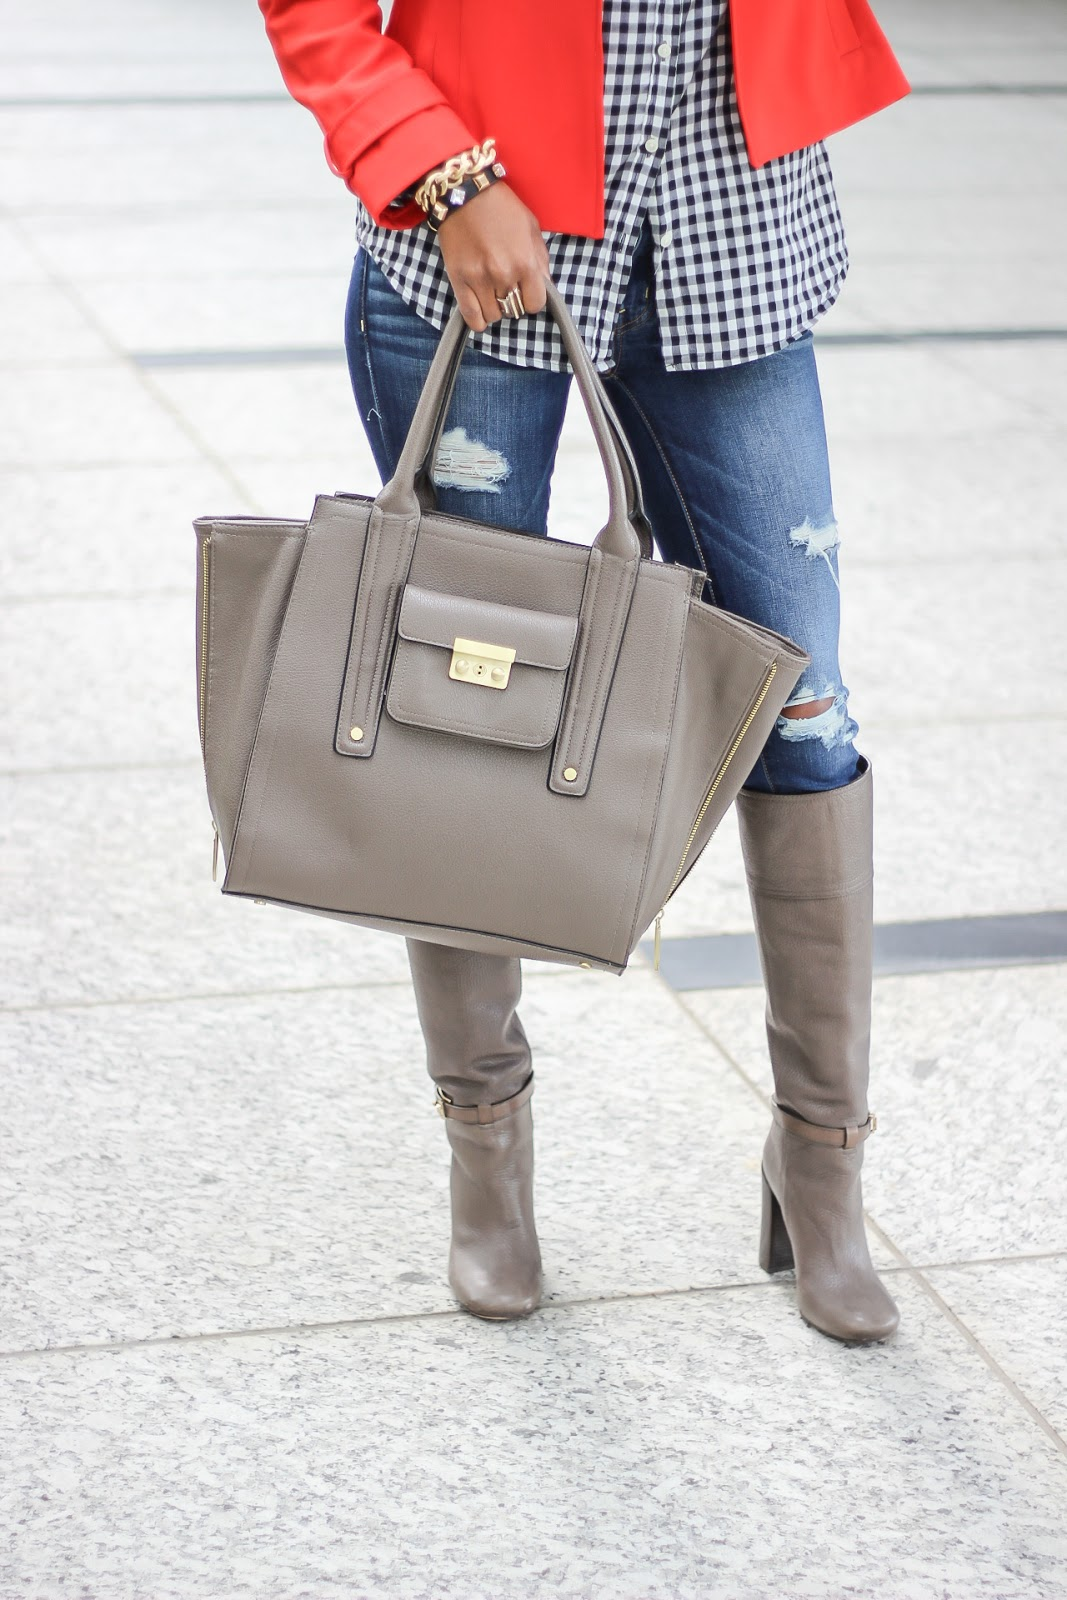 transitional fall outfit, knee boot outfit, how to wear boots, tory burch boots, 3.1 philip lim, look for less, fashion blogger, dallas fashion blogger, detroit fashion blogger, how to wear ripped jeans, american eagle ripped jeans, zara coat, j crew factory, casual fall outfit